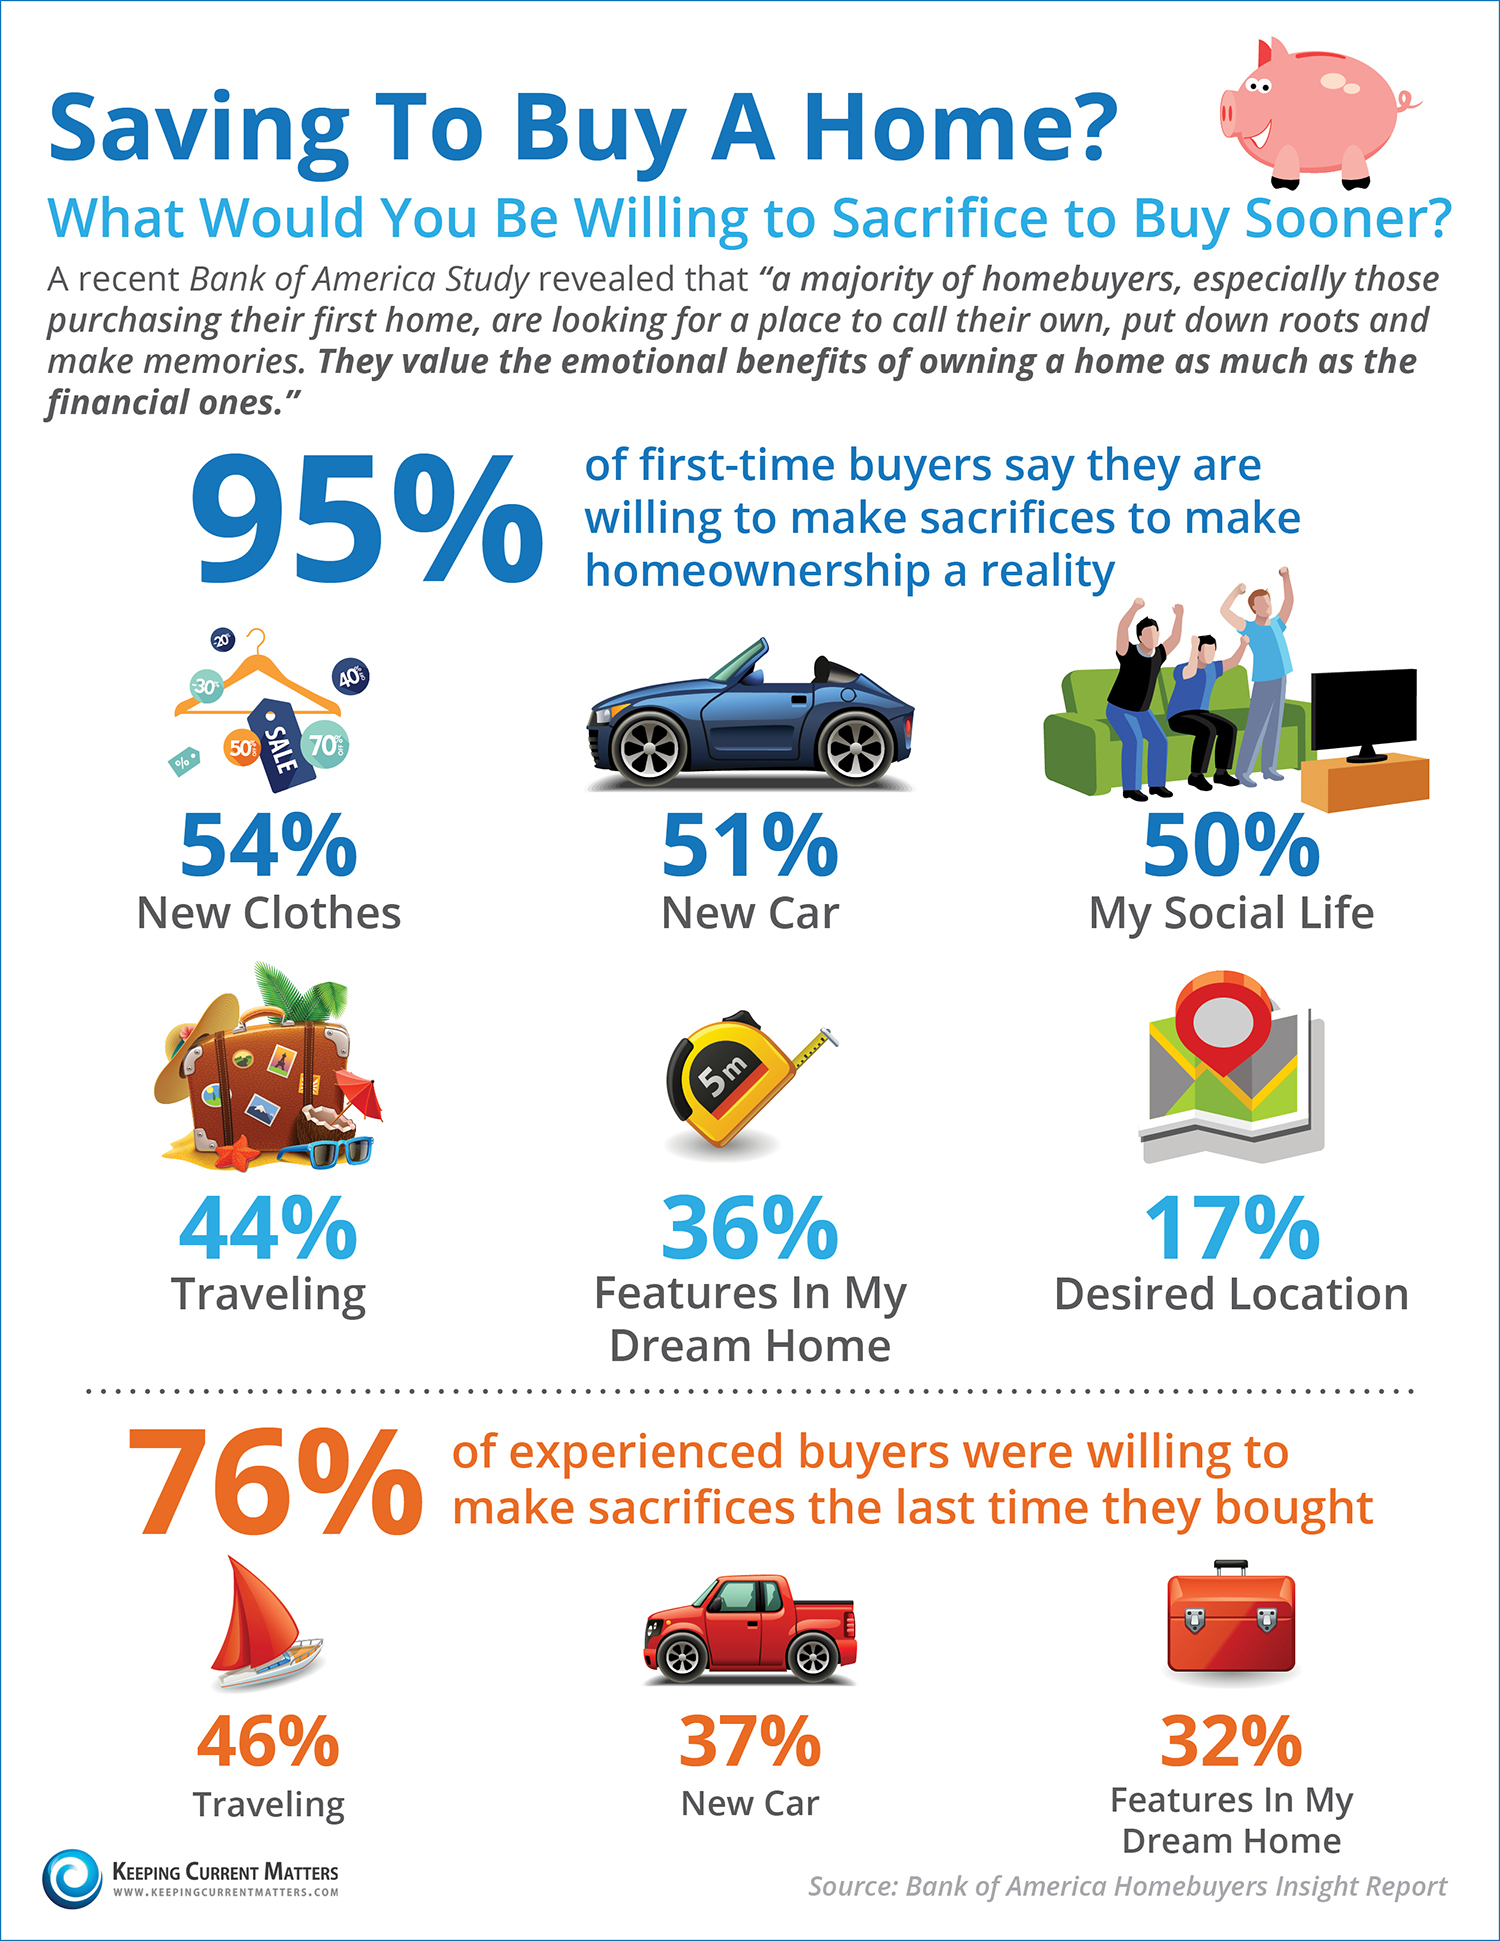 Saving To Buy A Home? What Would You Sacrifice? [INFOGRAPHIC]   Keeping Current Matters